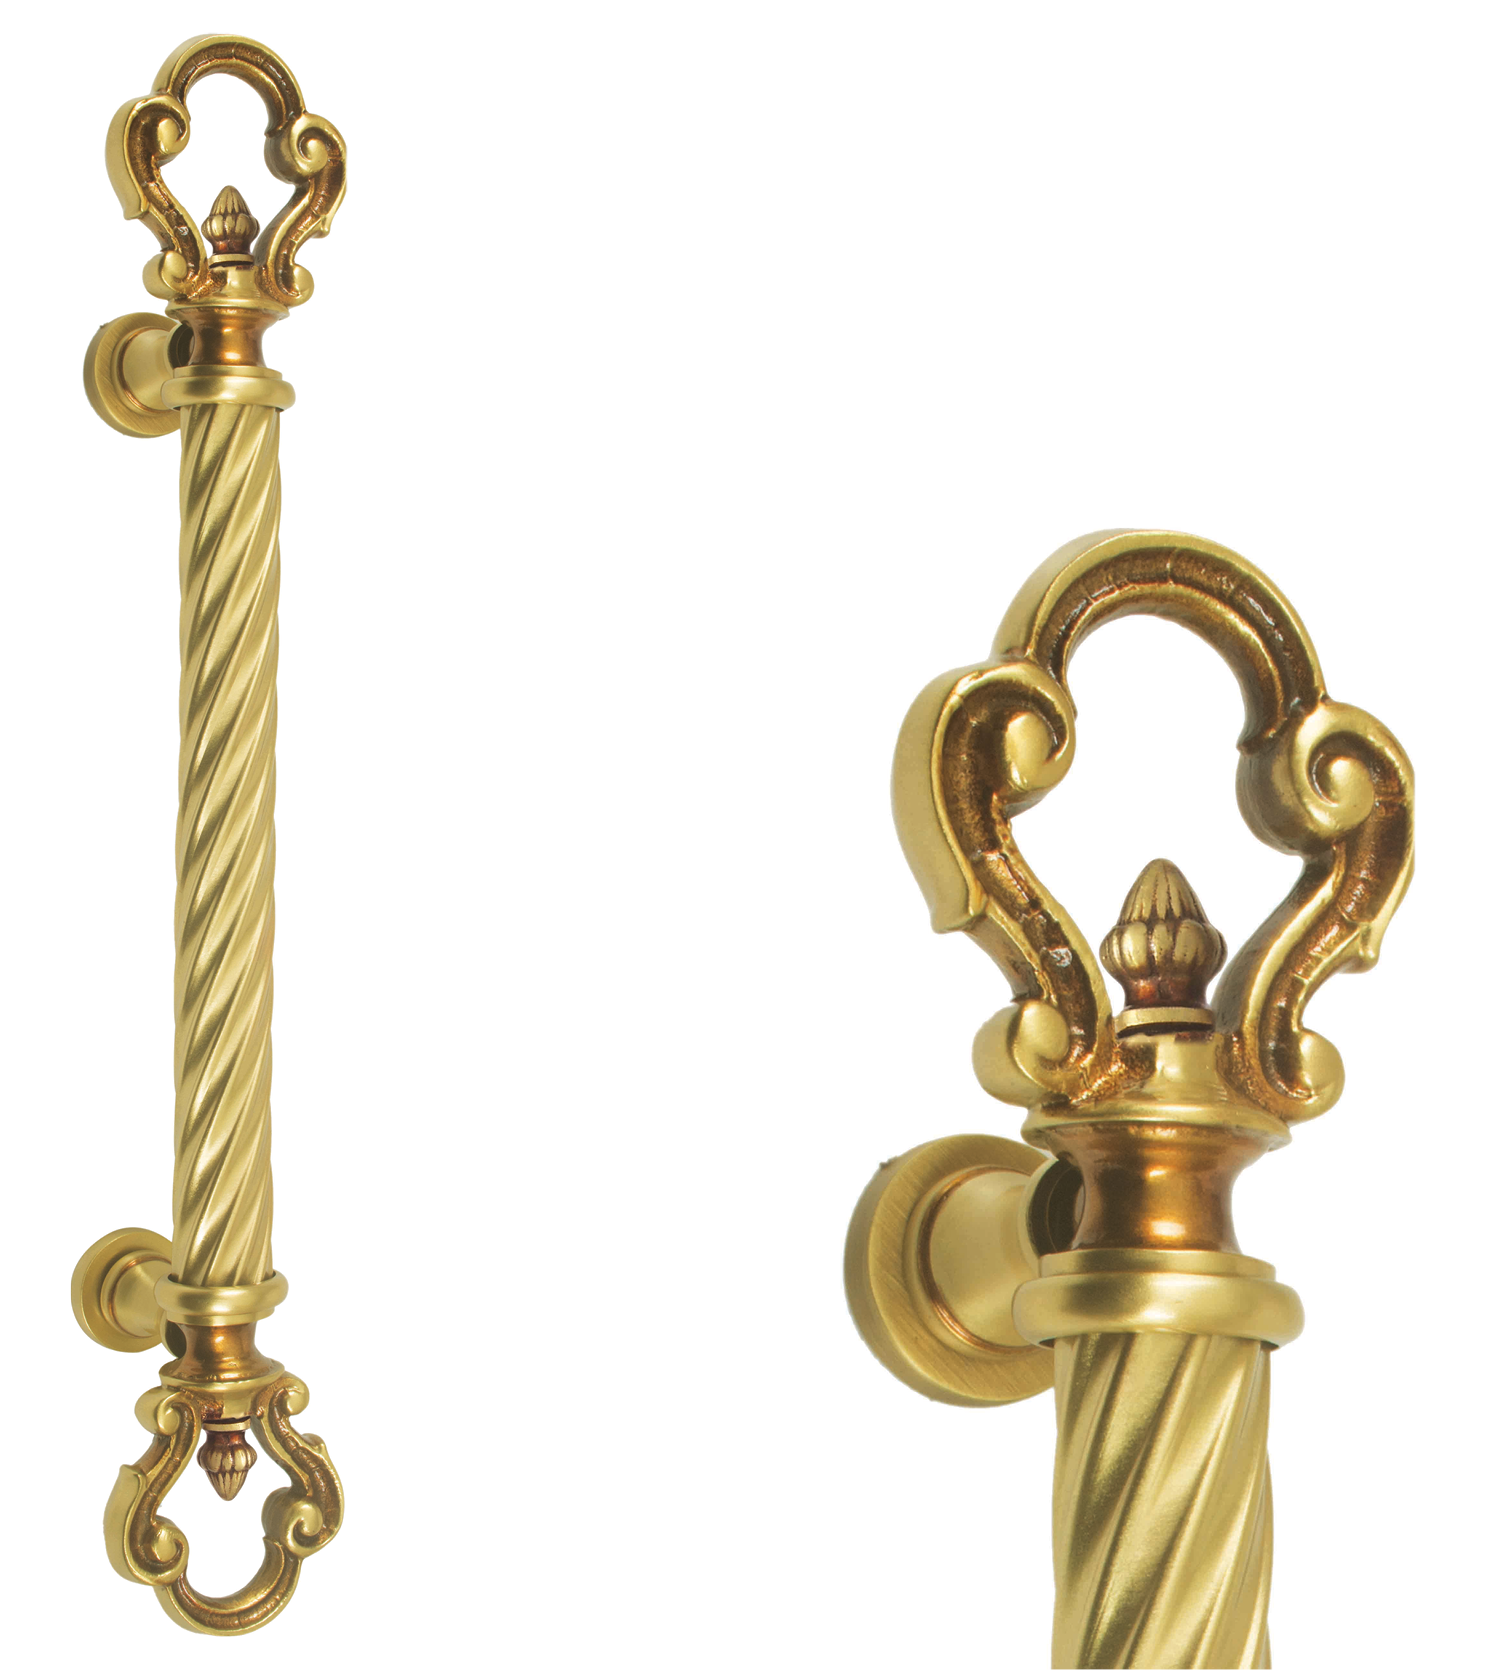 Classic main door pull handle and locks for glass and wooden doors  for chateaus